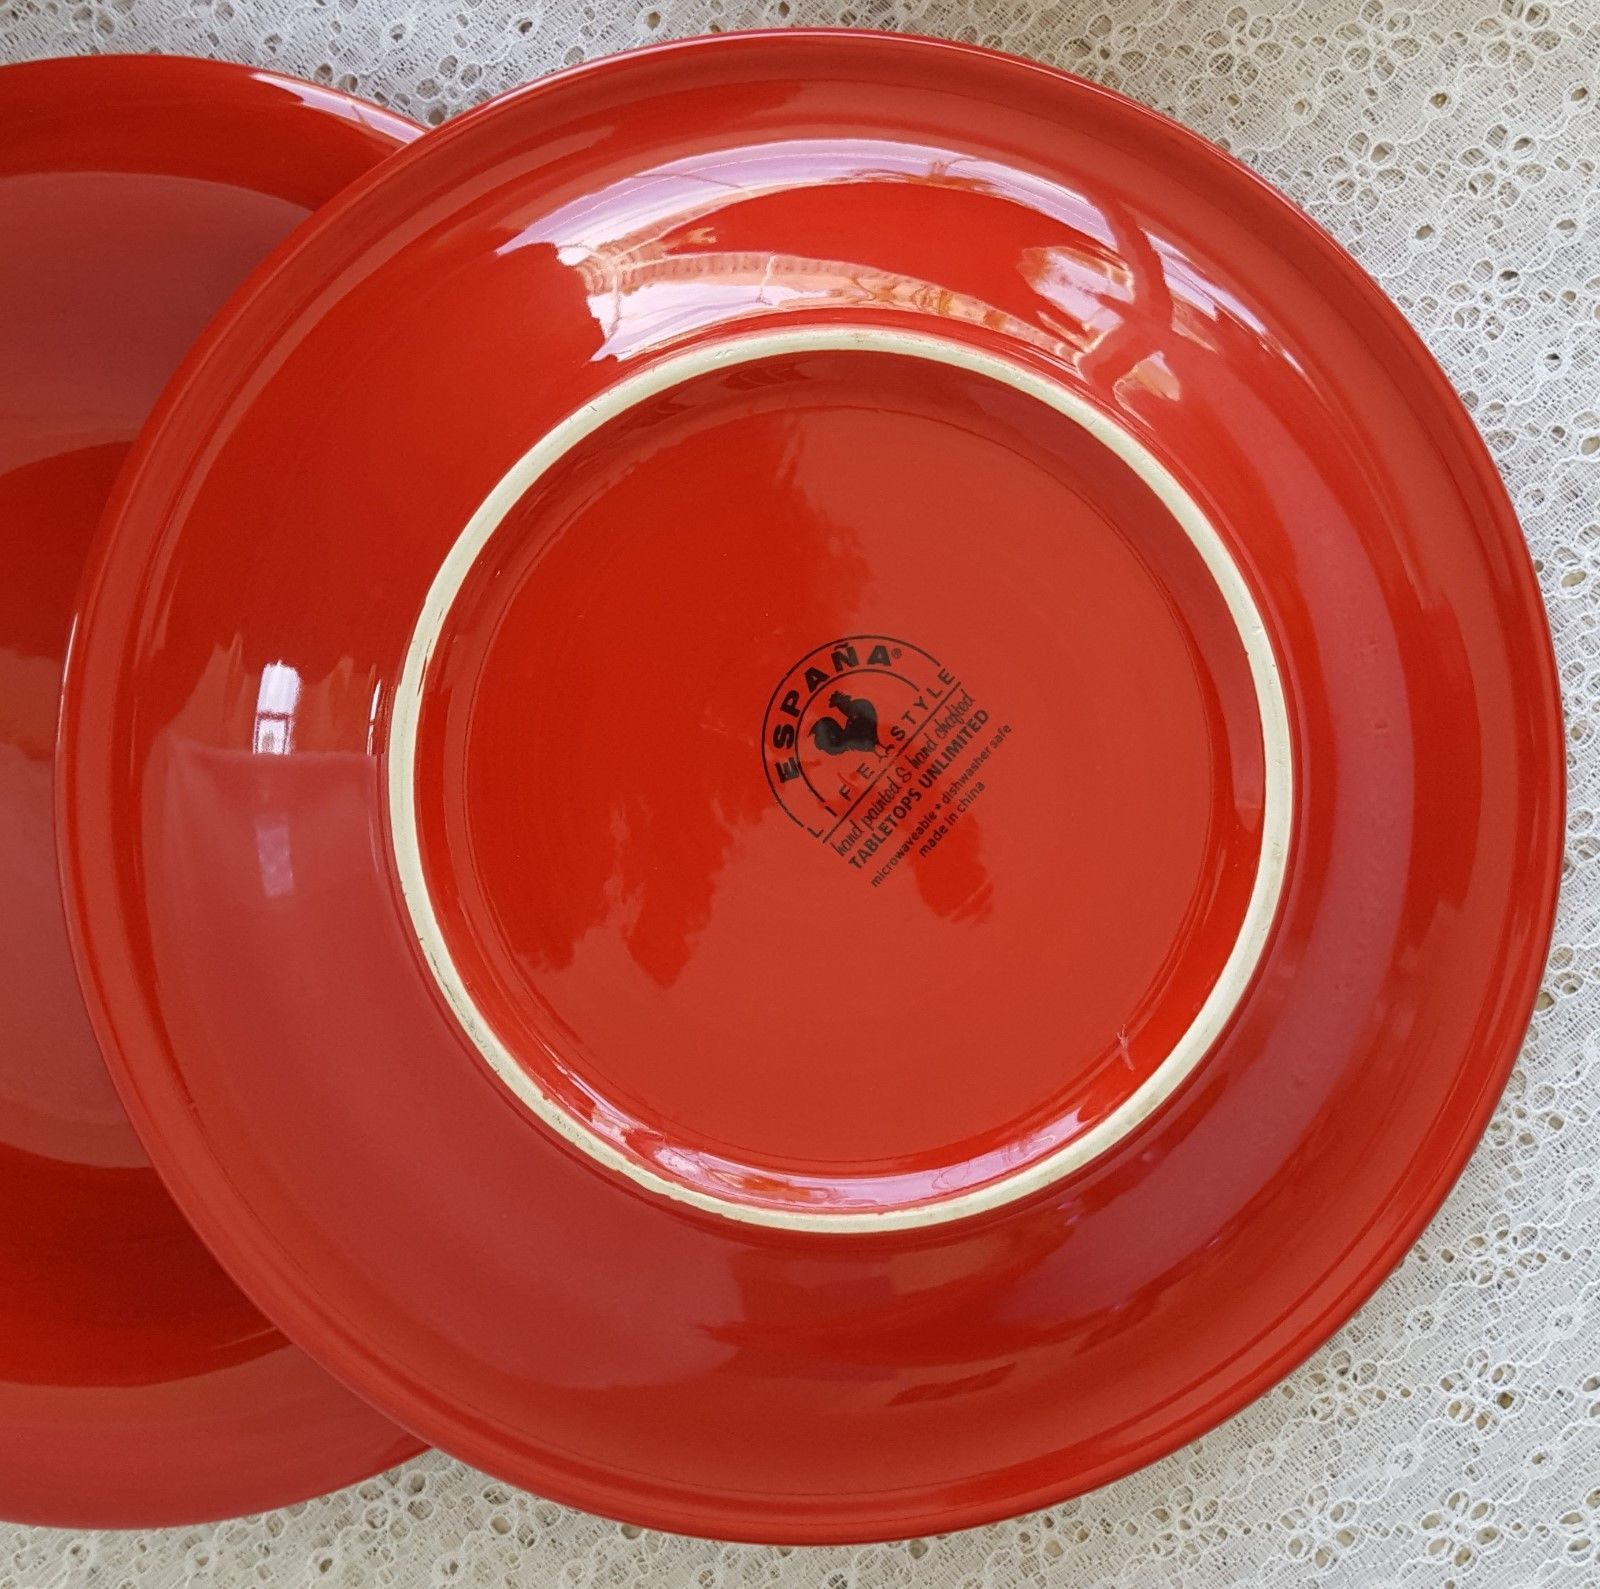 ... Tabletops LIfestyle Unlimited Espana Blaze Red Dinner Plates Set of 5 Stoneware & Tabletops LIfestyle Unlimited Espana Blaze and 50 similar items